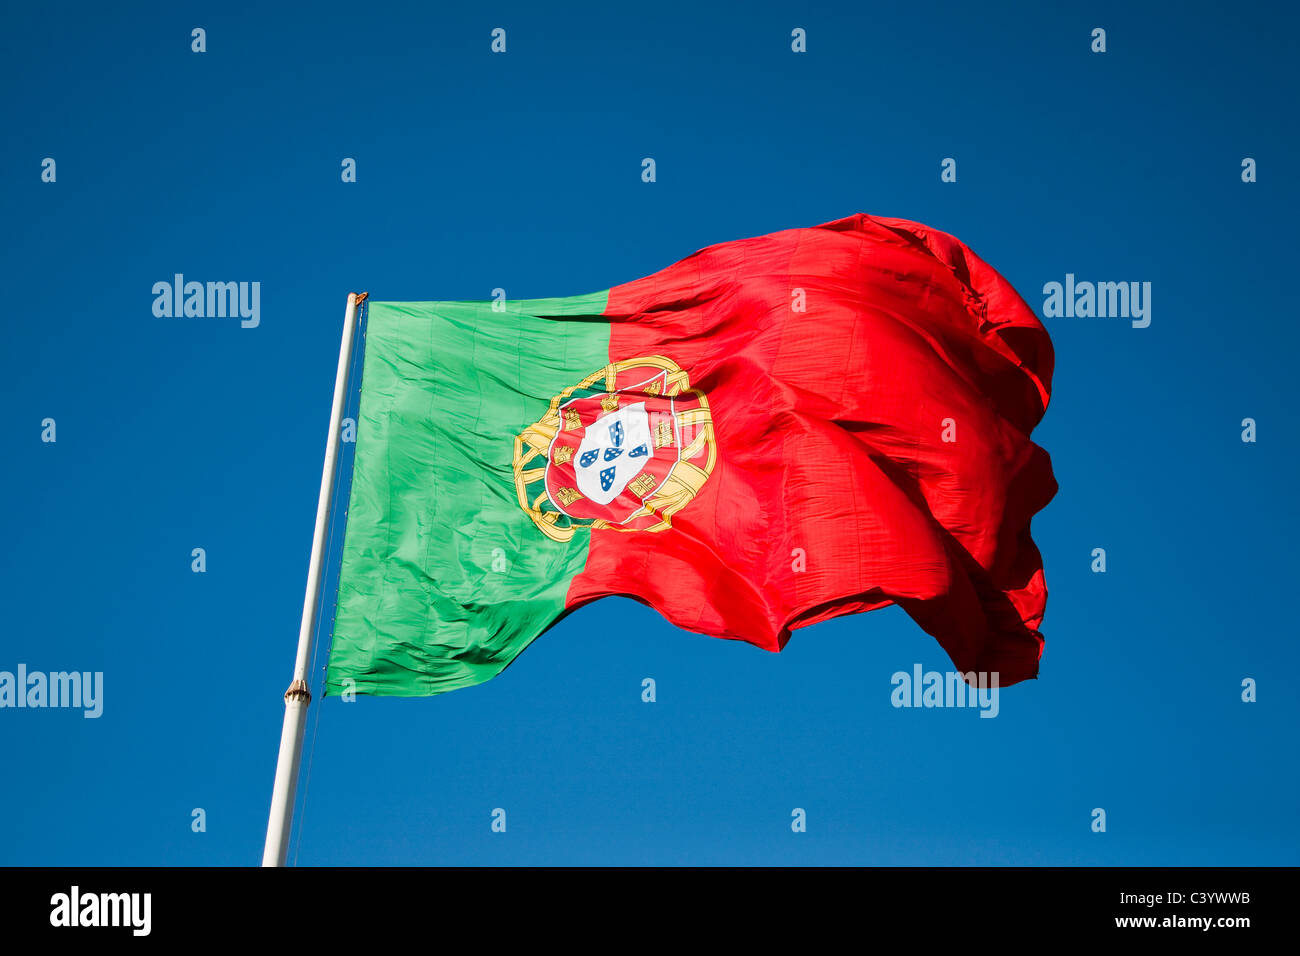 Portugal, Europe, flag, banner, flag, green, red - Stock Image